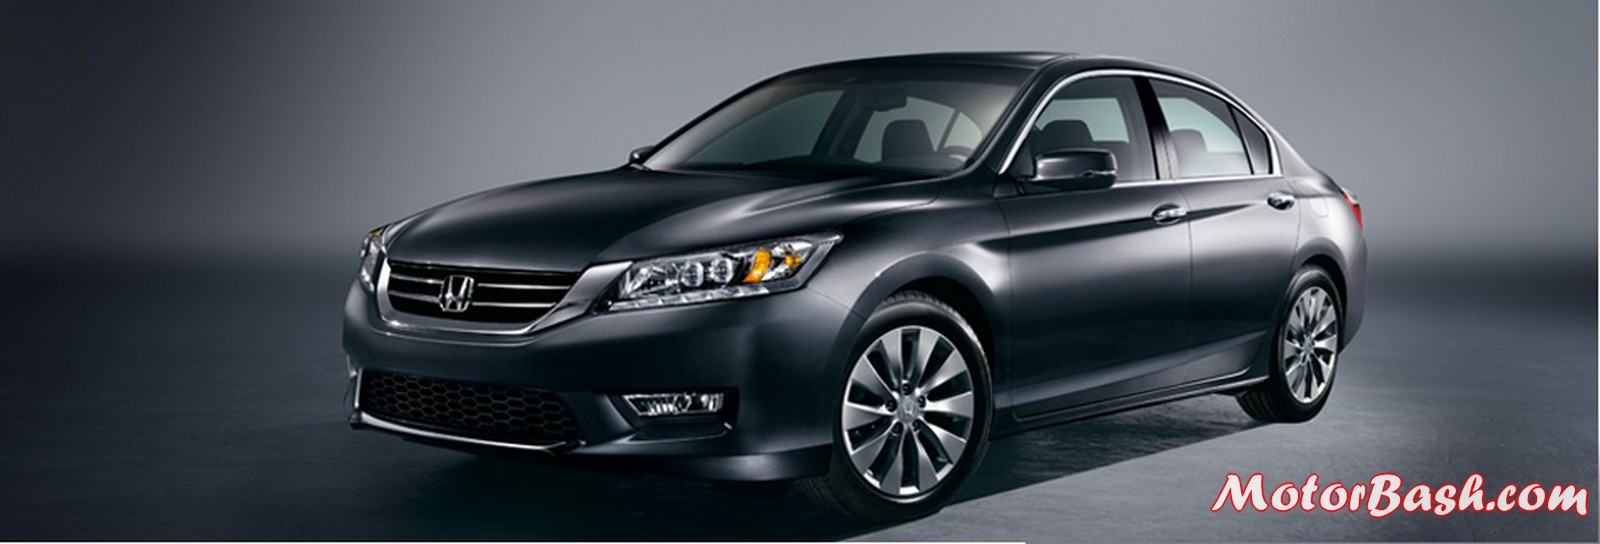 New_2013_Honda_Accord